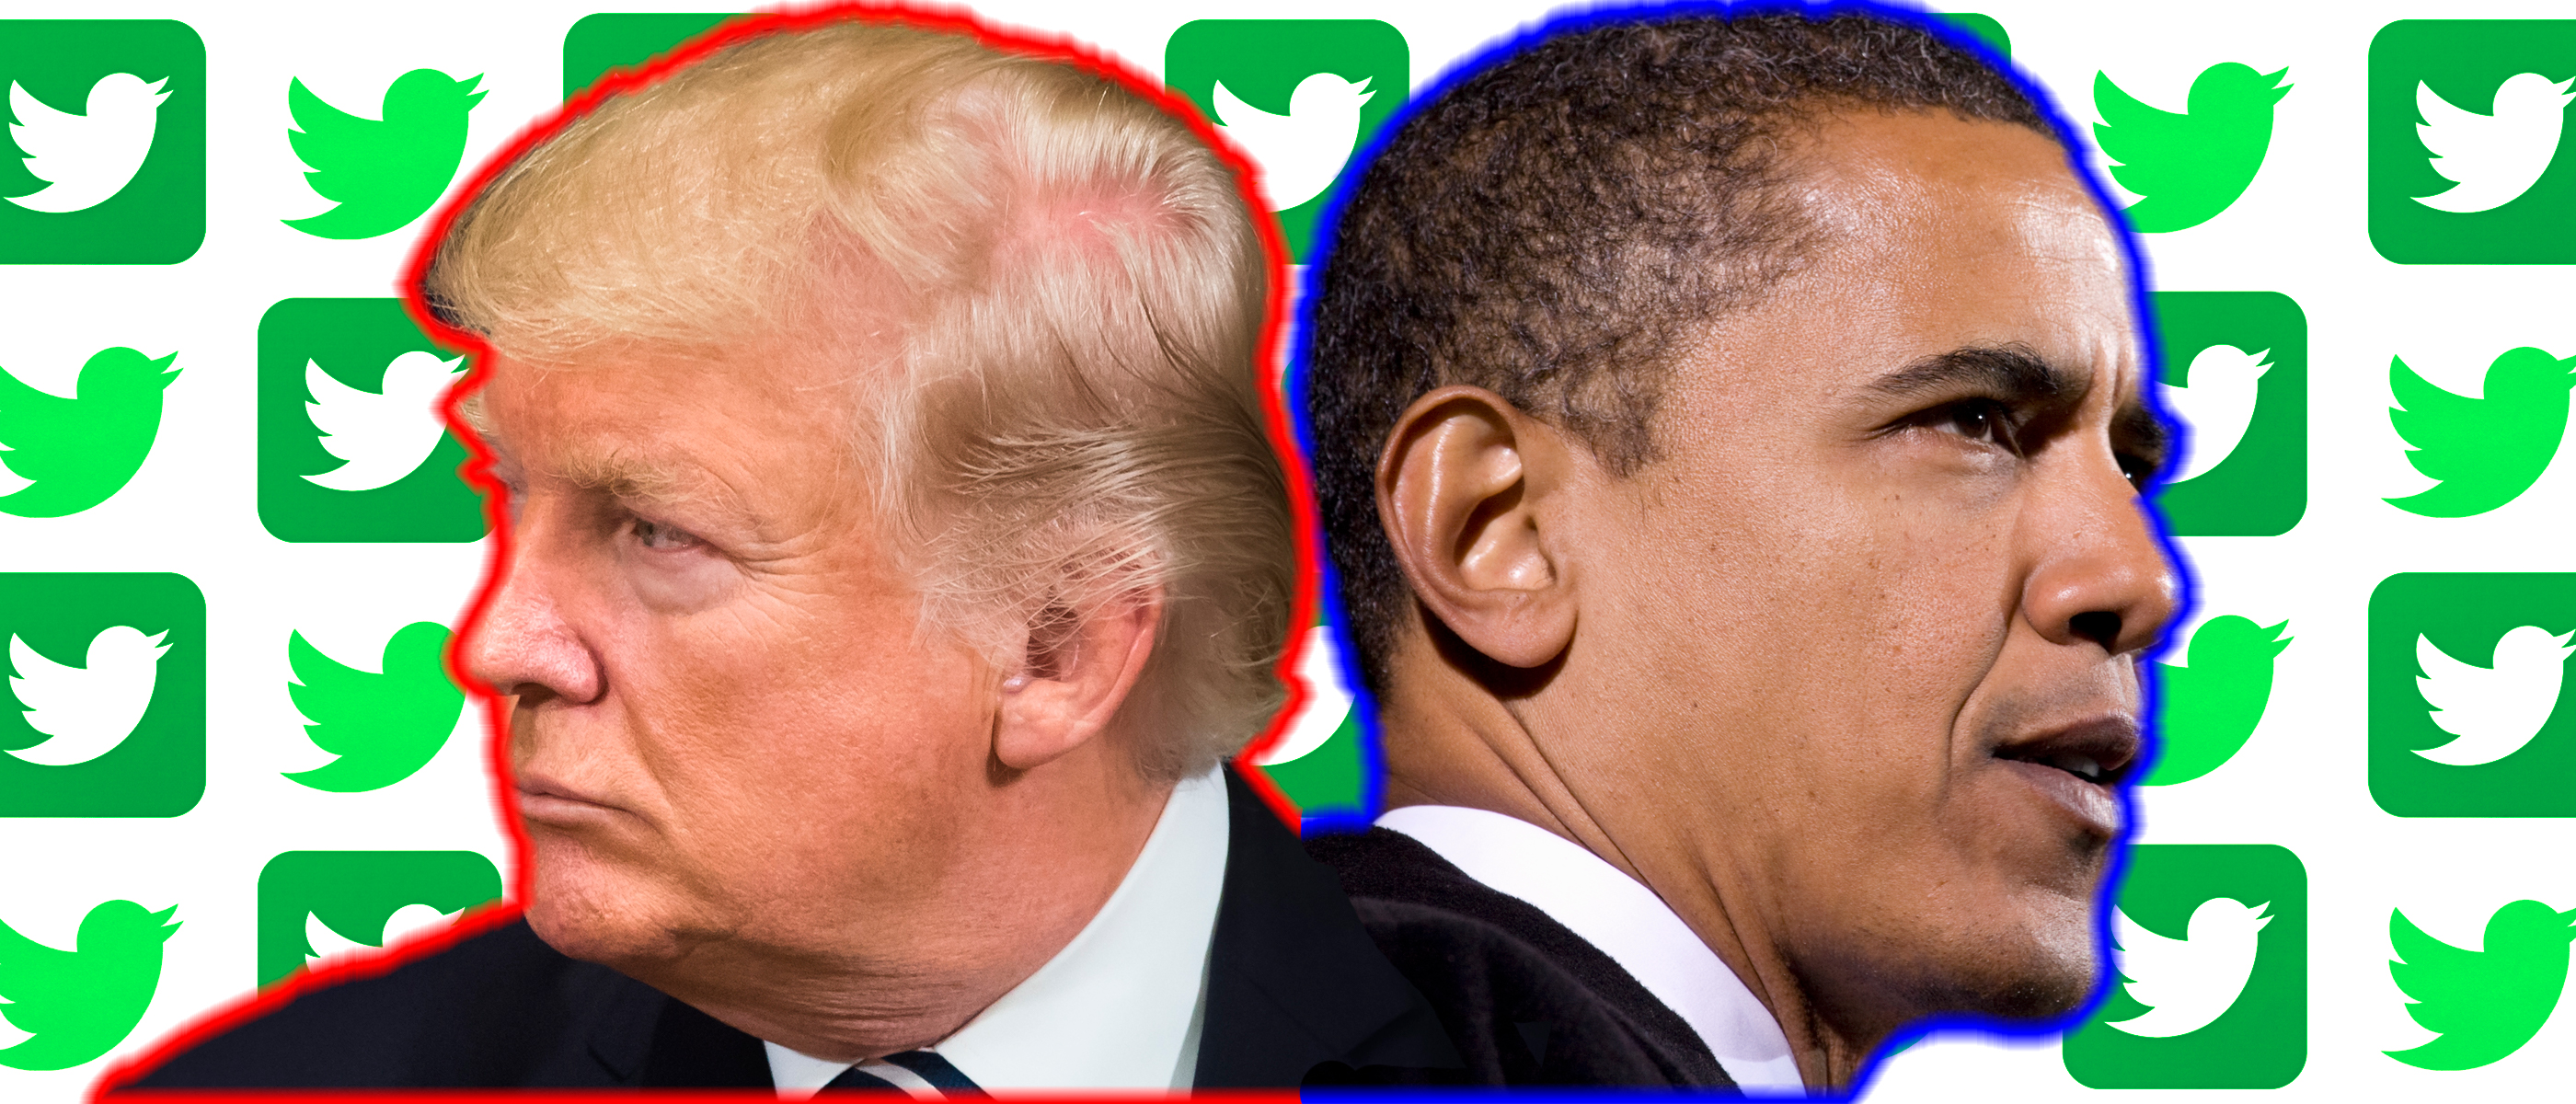 President Donald Trump and former President Barack Obama lost a substantial number of followers after Twitter removed locked accounts for suspicious activity. (Images: Shutterstock.com, edits made by Kyle Perisic)